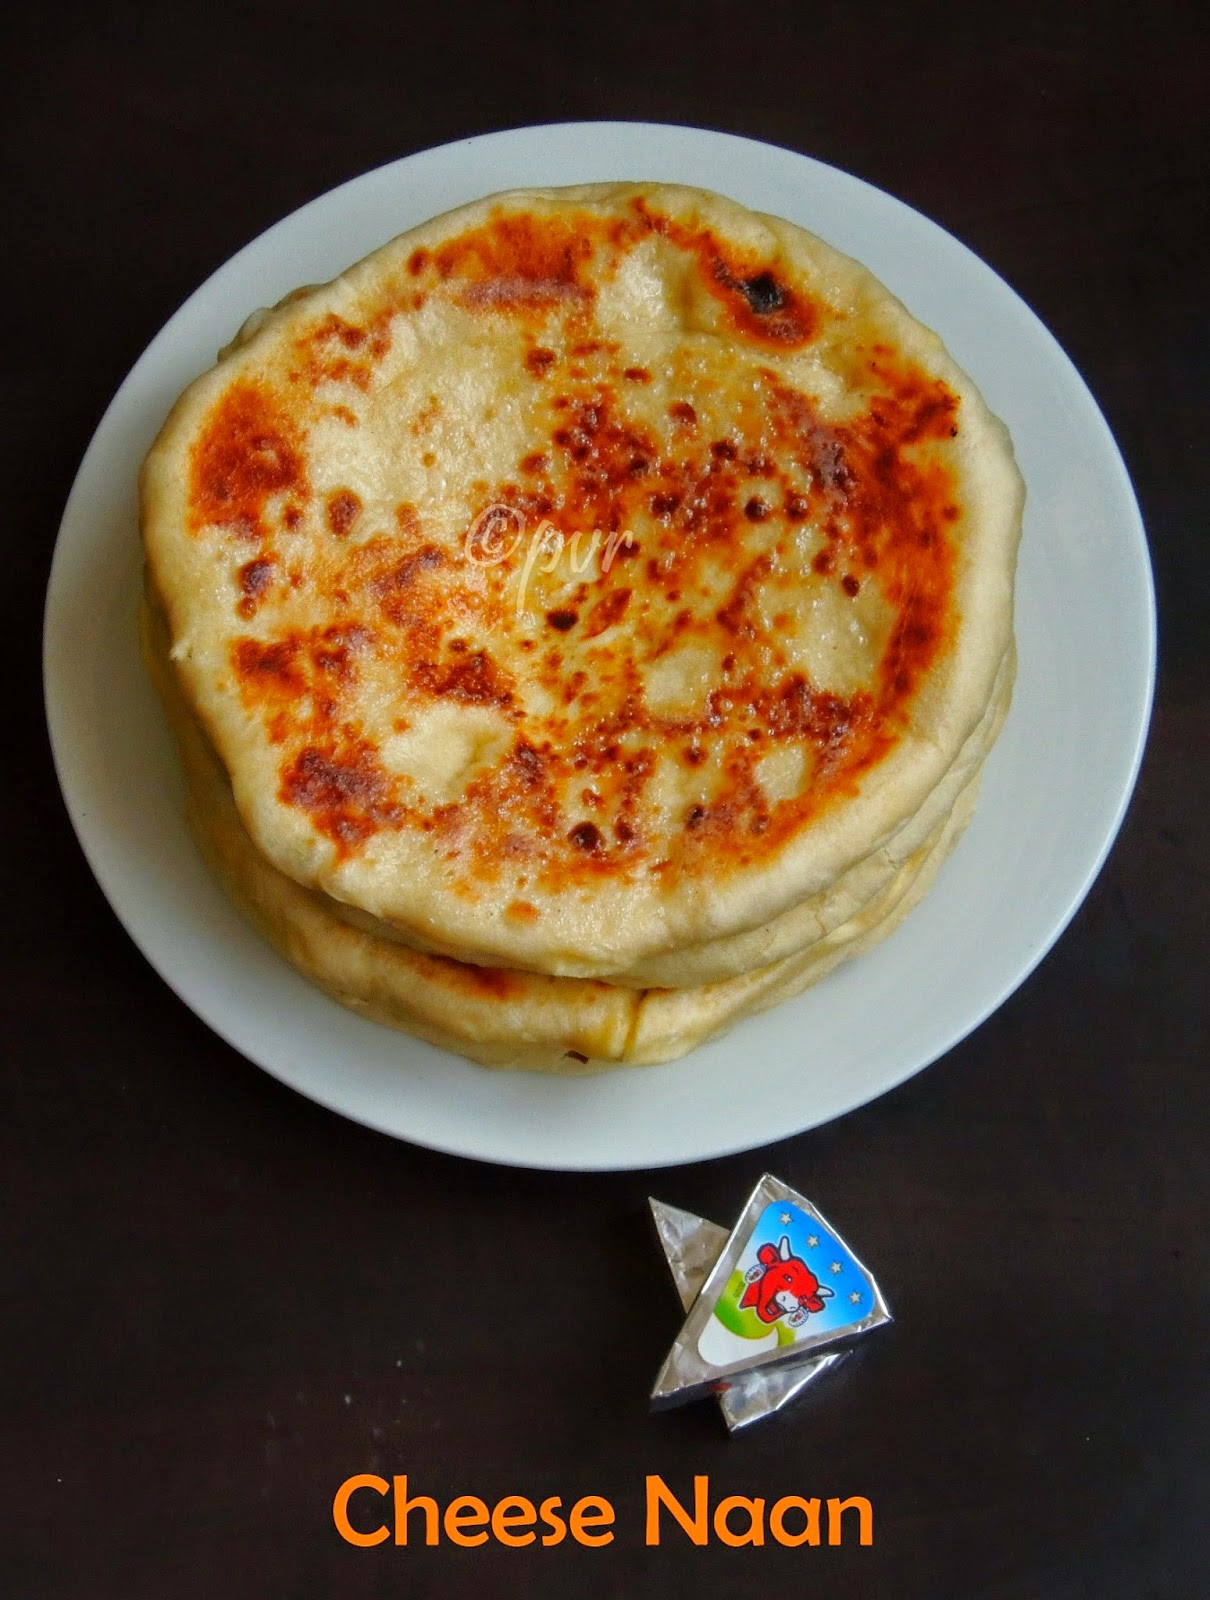 Cheese Naan, Naan with laughing cow